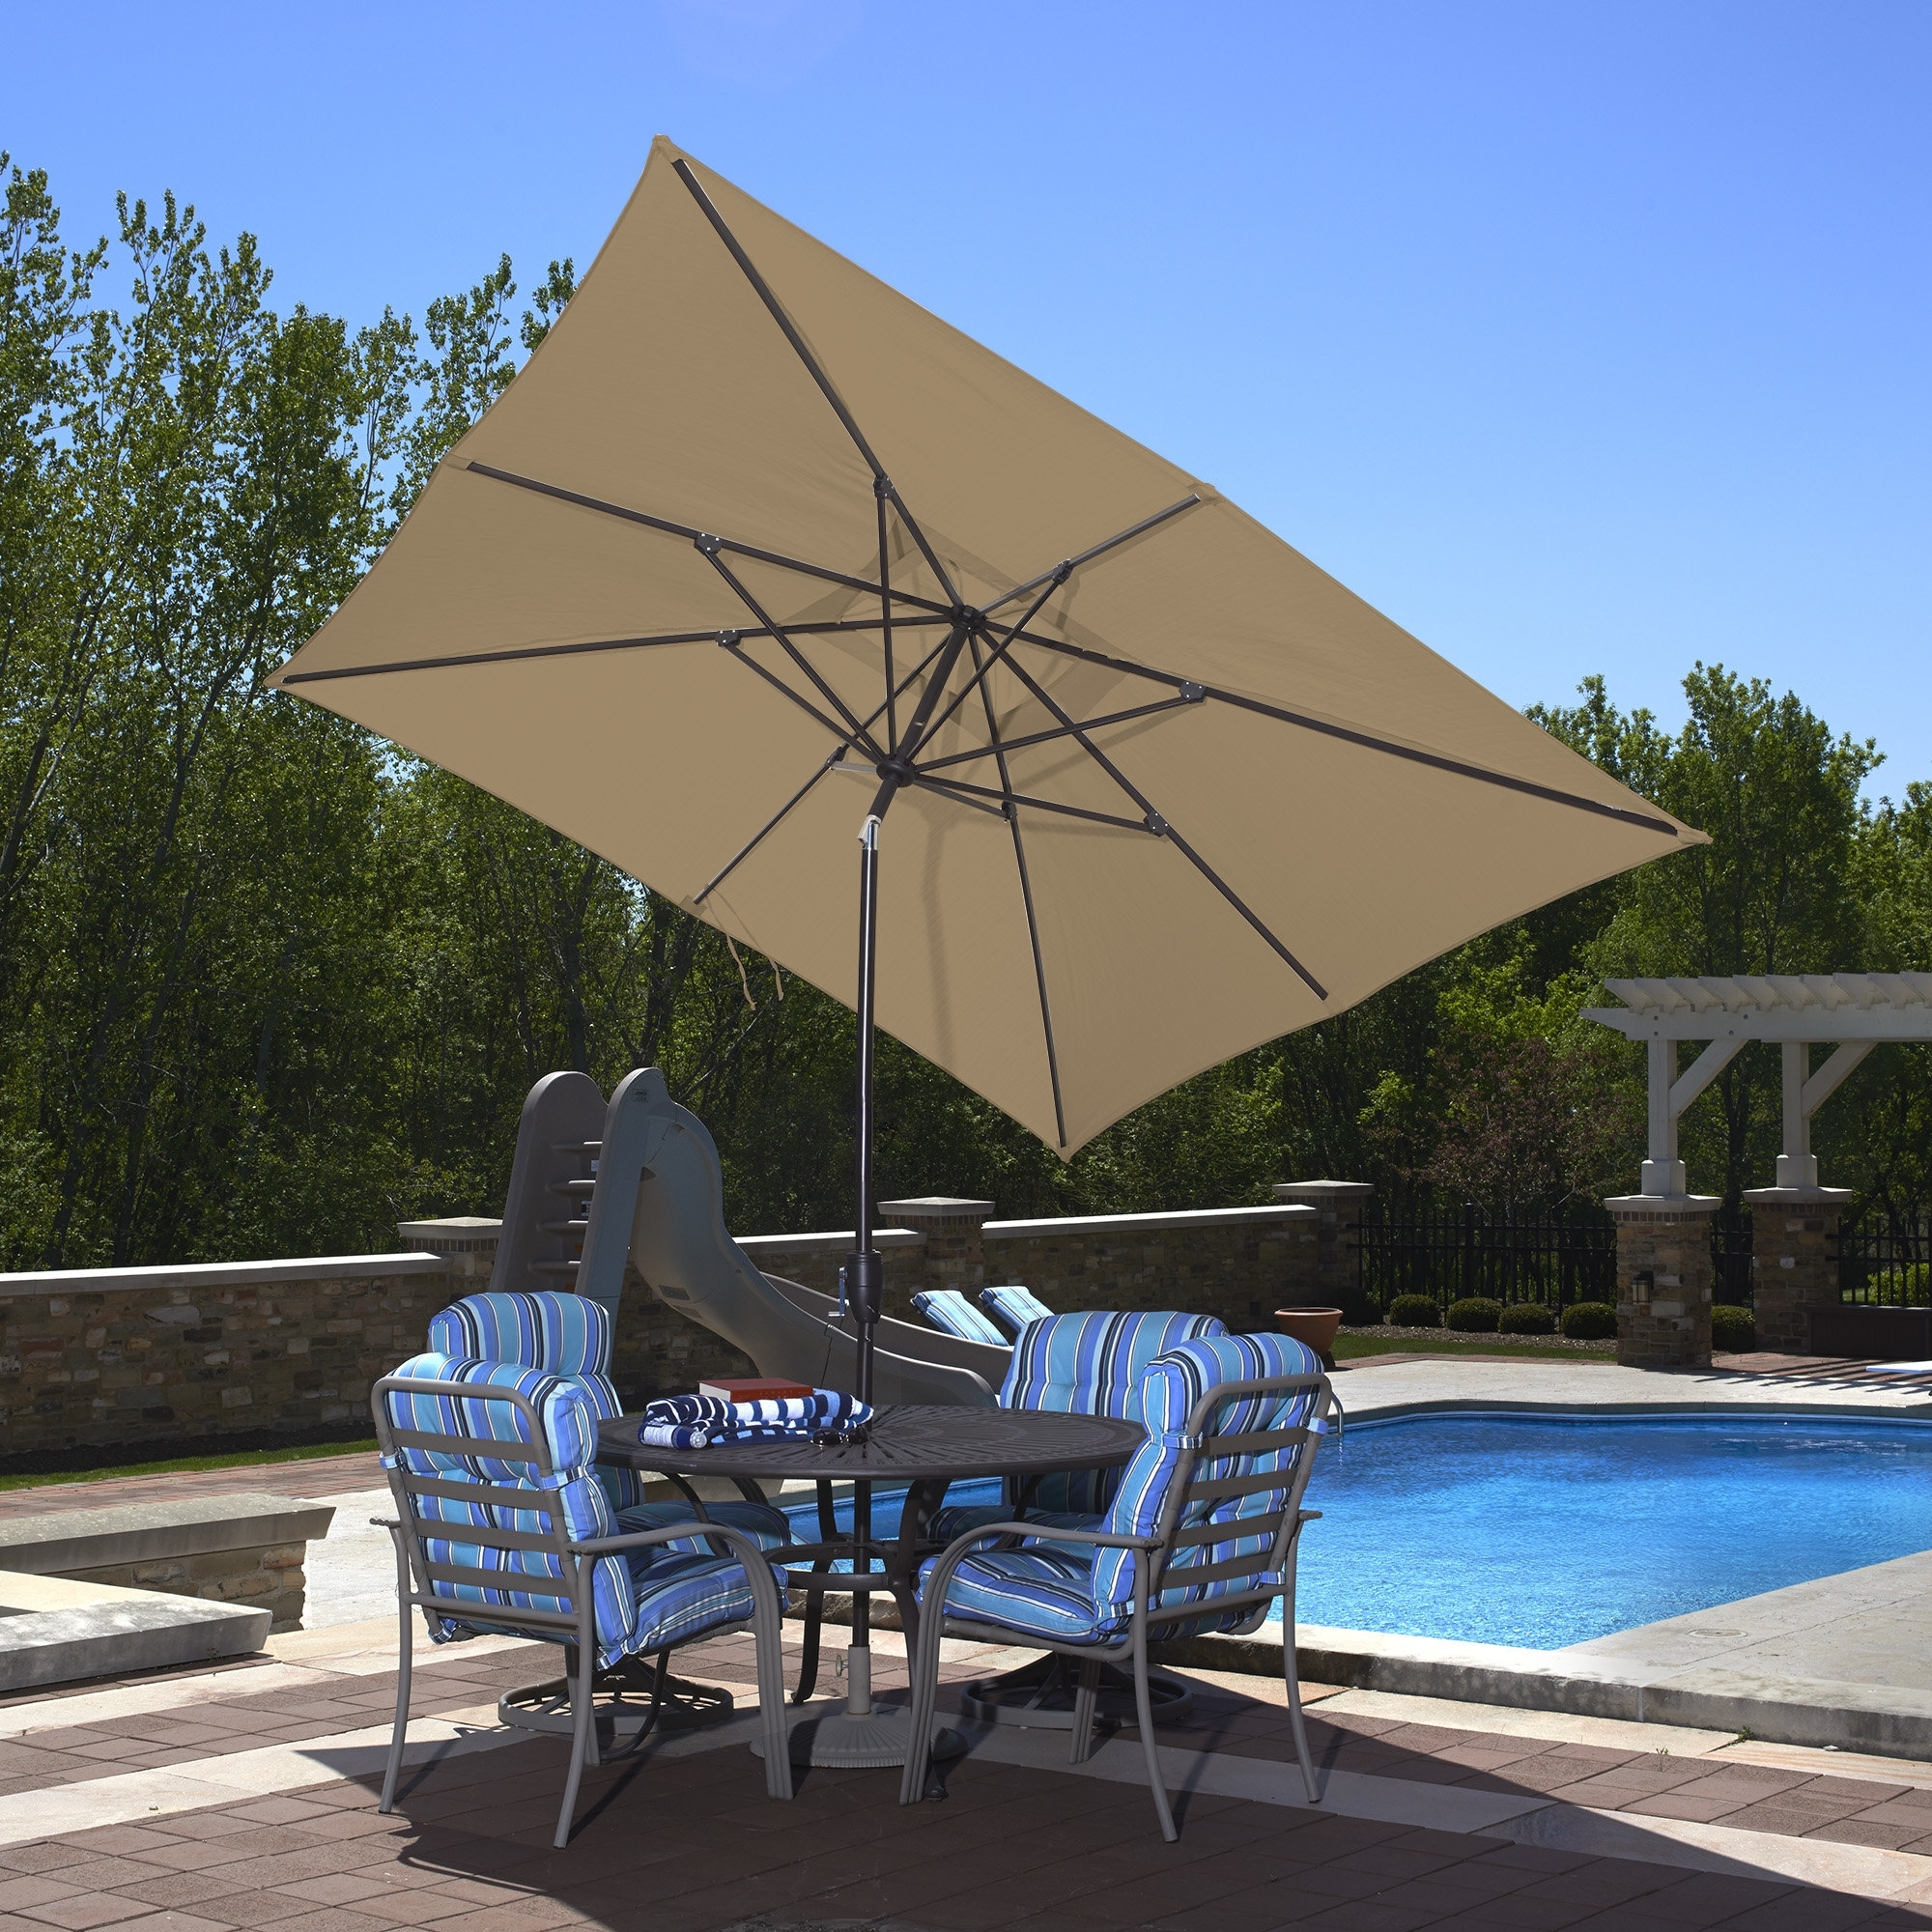 Wayfair Patio Umbrellas With Best And Newest Blue Wave 10' X 8' Rectangular Market Umbrella & Reviews (View 17 of 20)